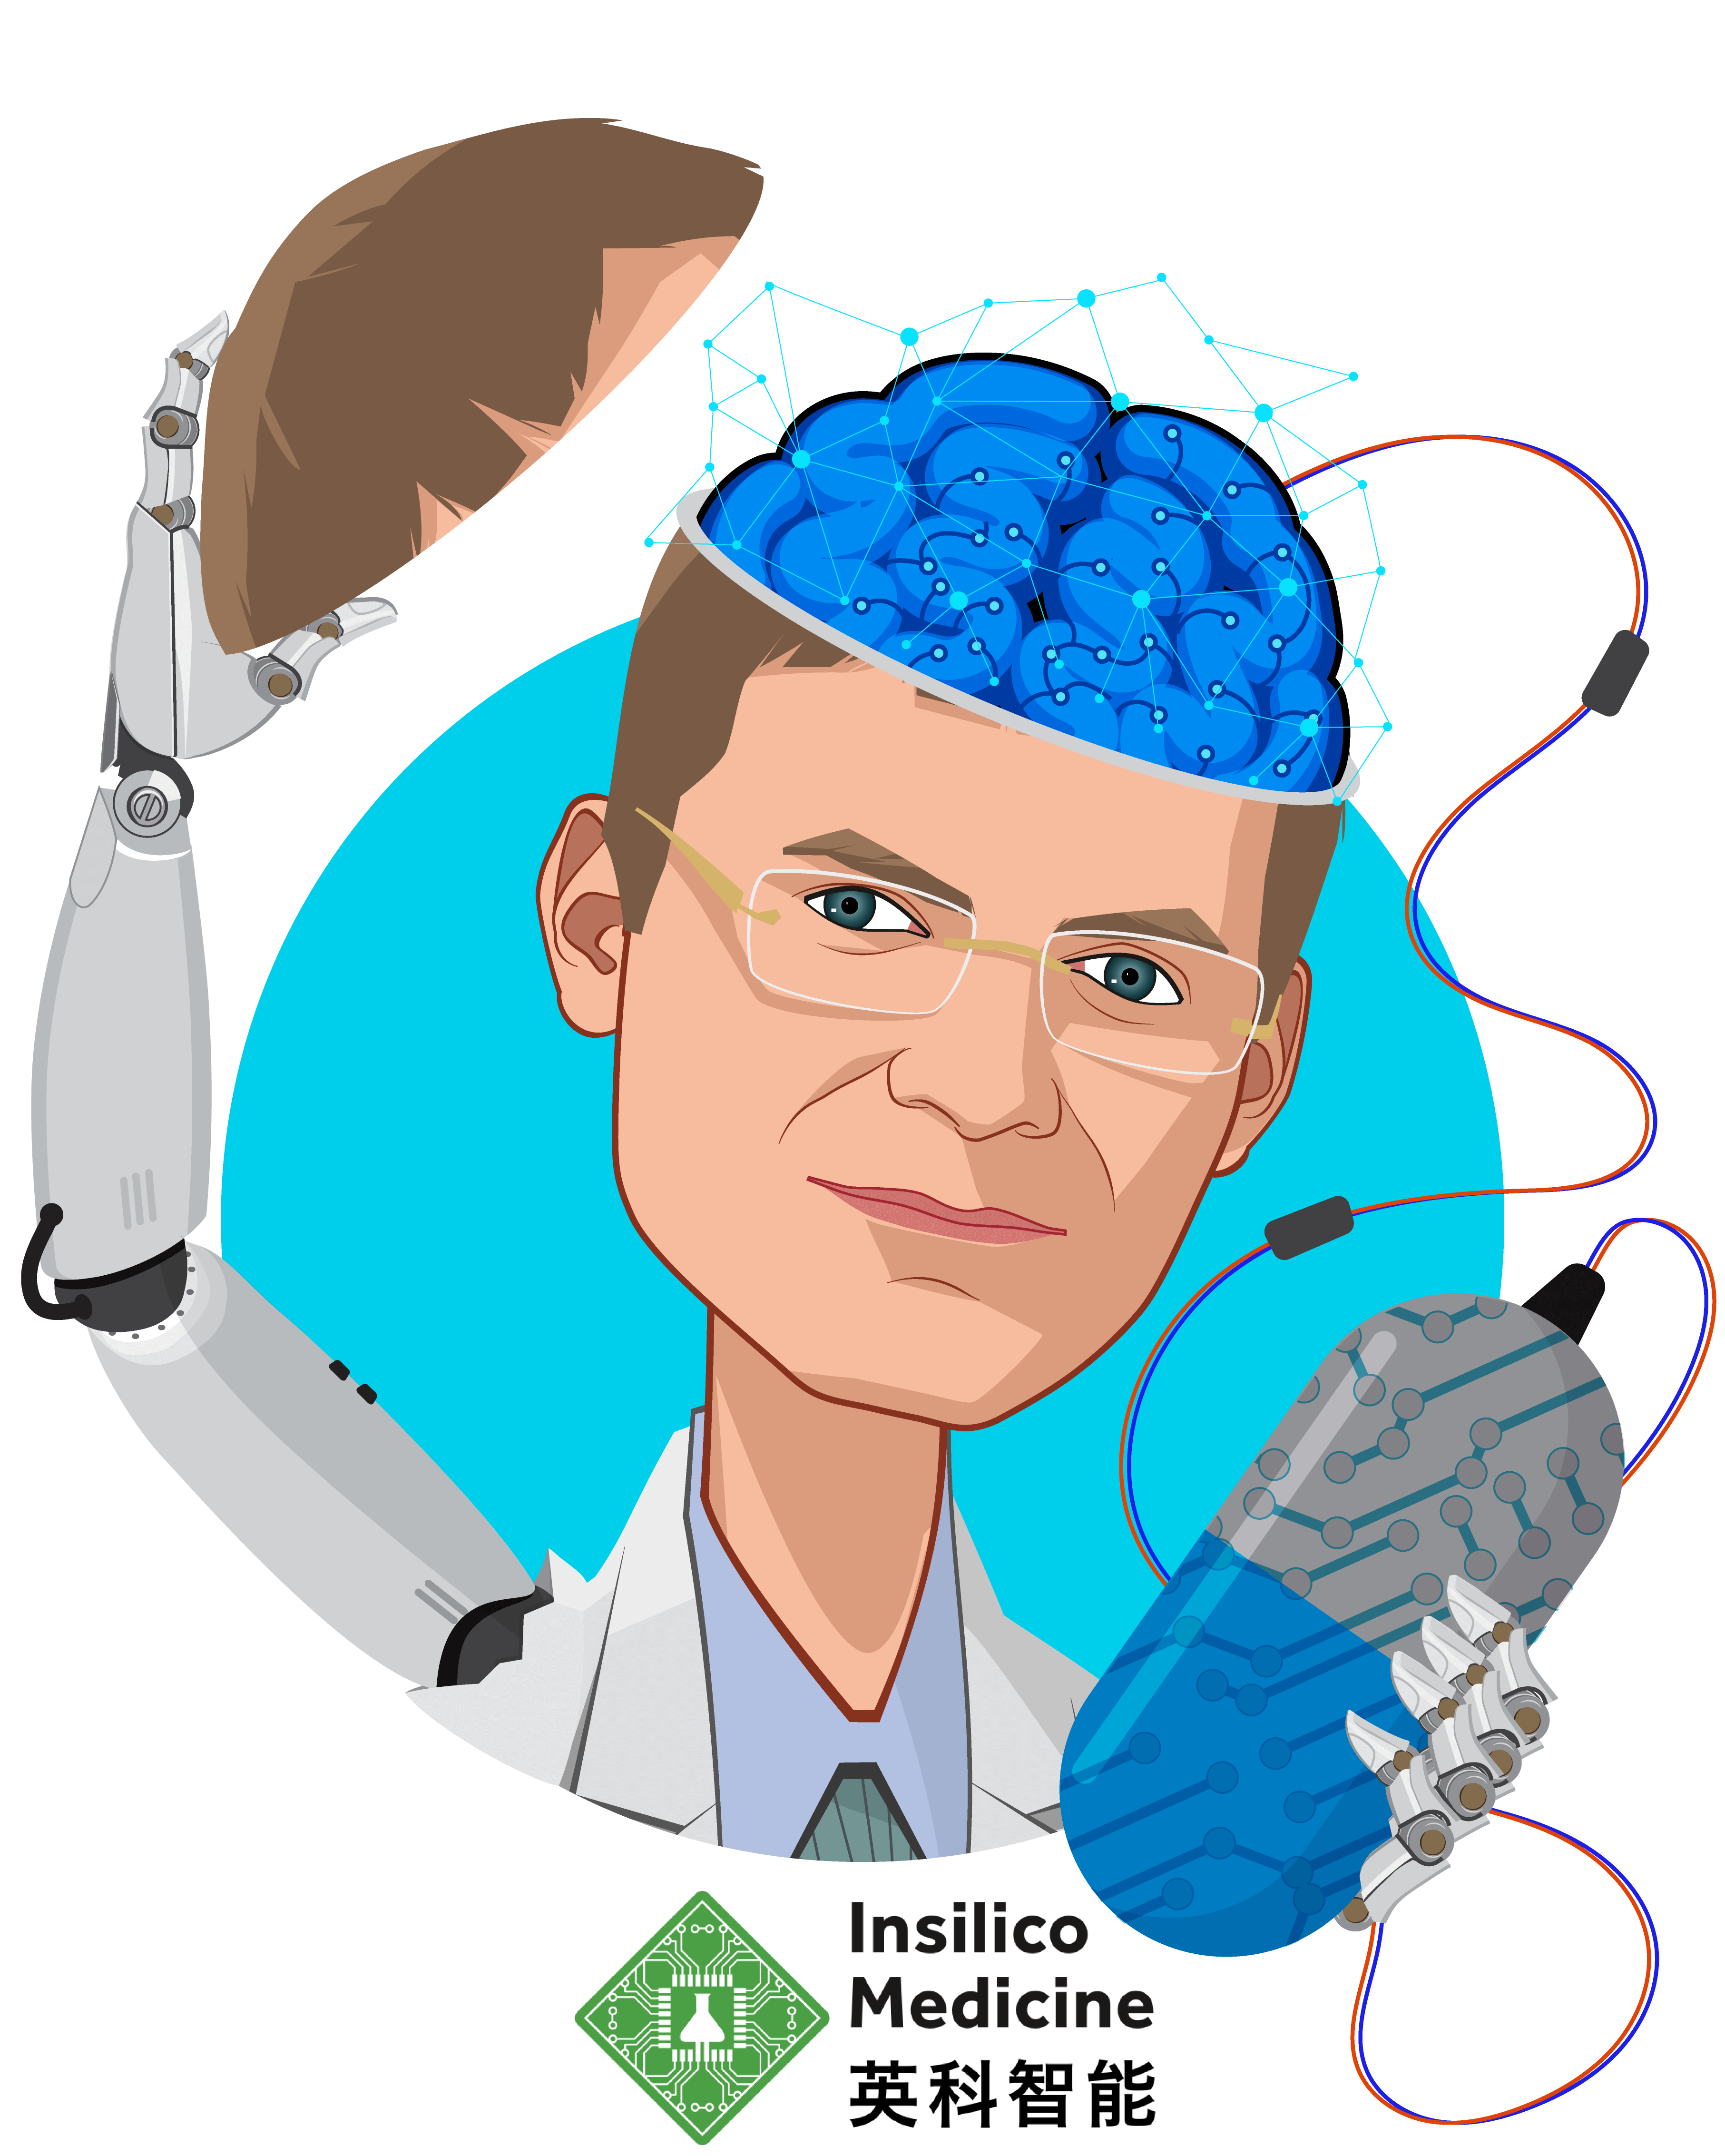 Overlay caricature of Alex Zhavoronkov, who is speaking at HLTH and is Founder and CEO at Insilico Medicine, Inc